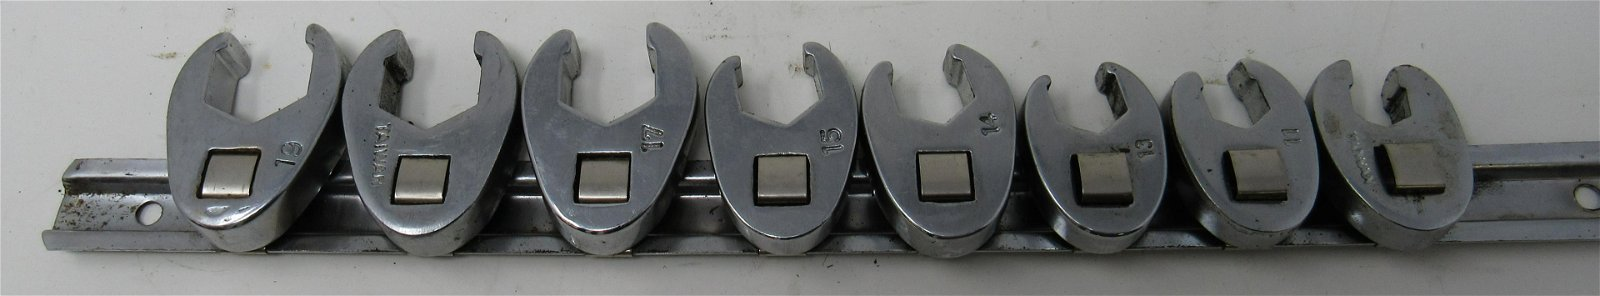 3/8 Inch Drive Crowfoot Wrenches